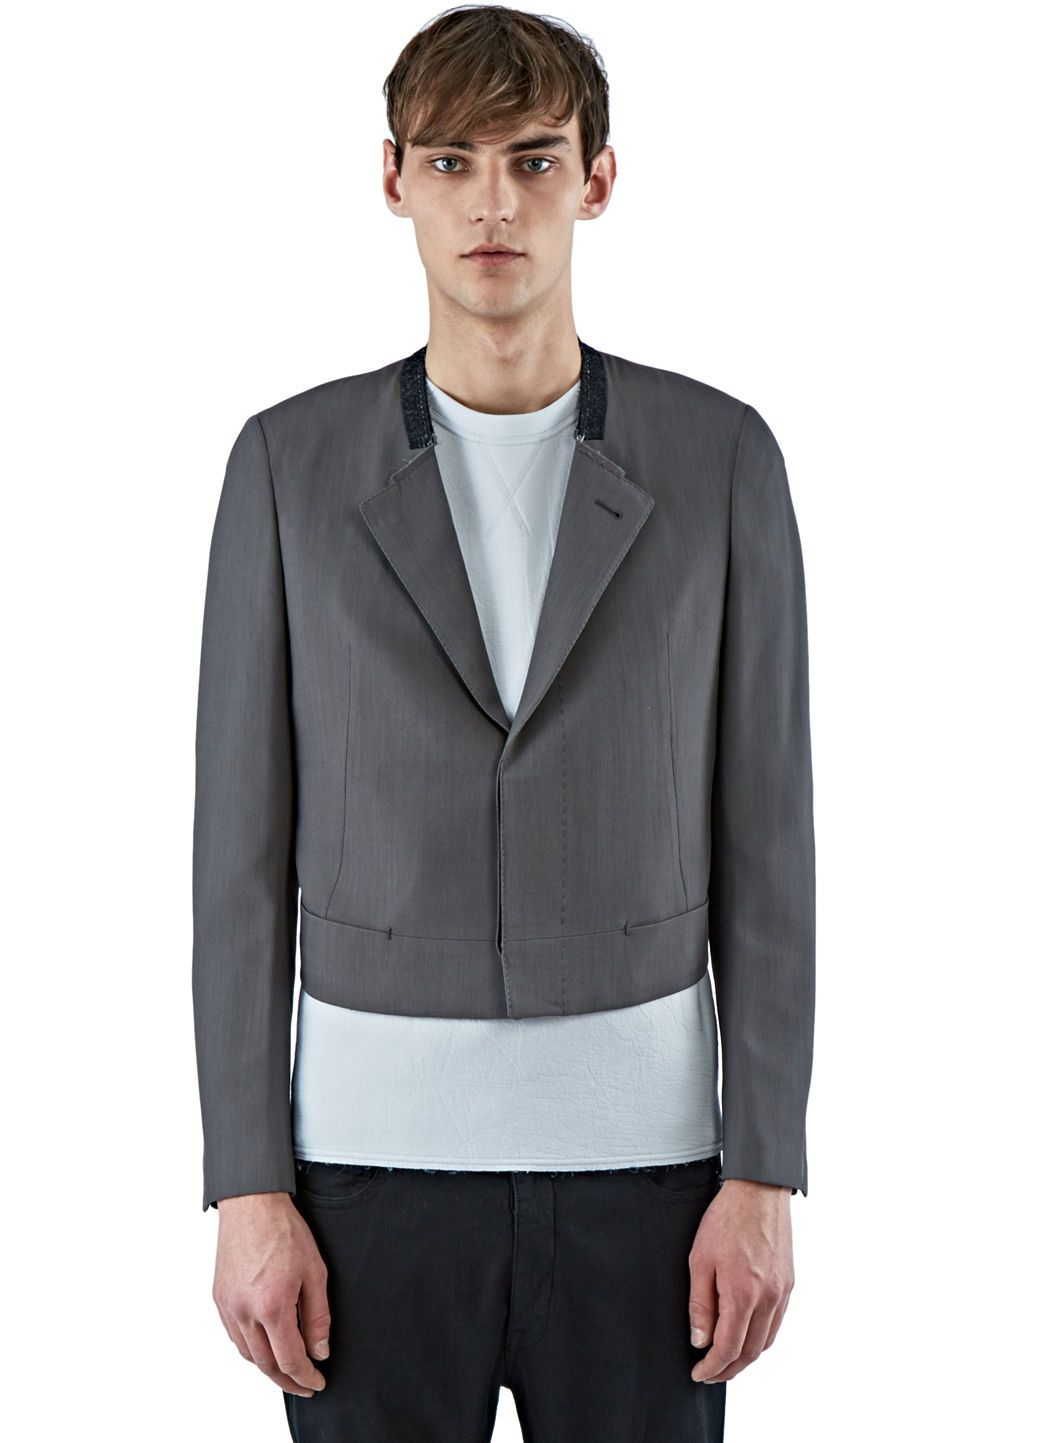 692dc9f426c4 LANVIN Men S Cropped Tailored Jacket In Grey.  lanvin  cloth ...